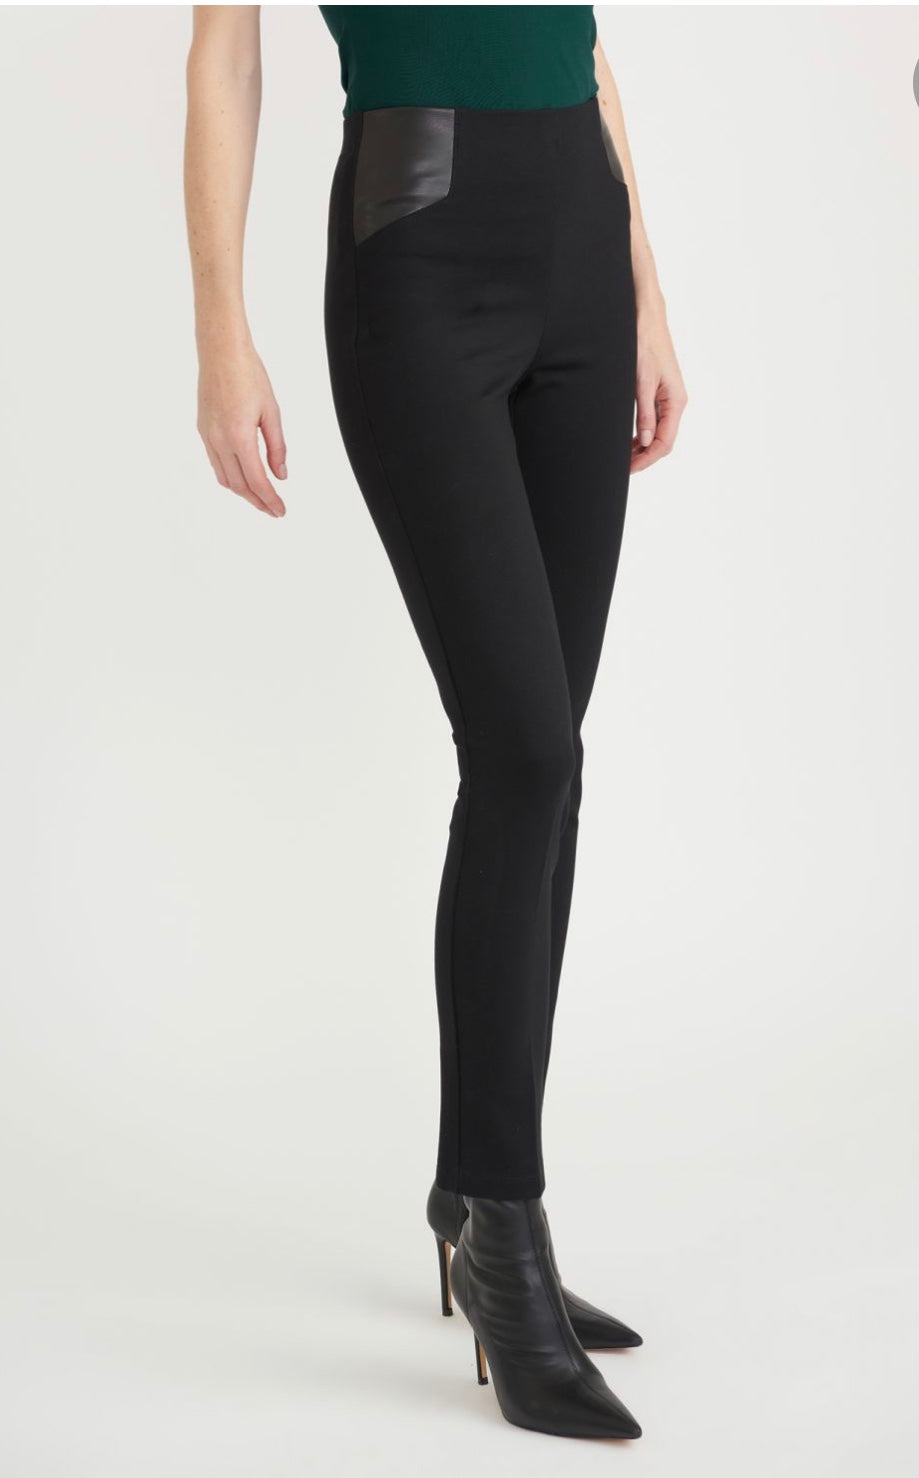 Leather top slim pant - 203677